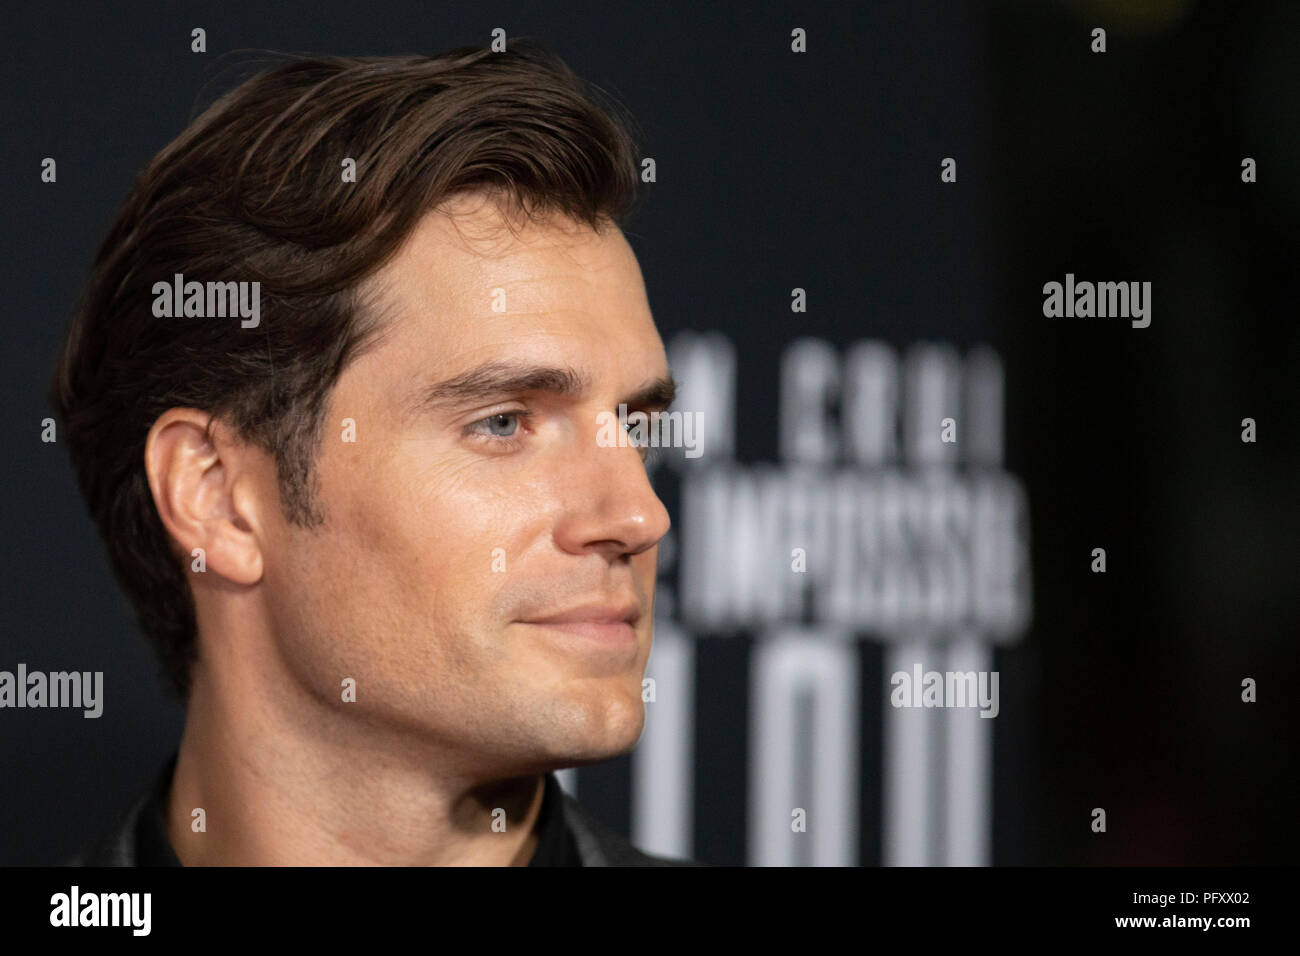 Actor Henry Cavill on the red carpet prior to a screening of Mission Impossible Fallout a the Smithsonian National Air and Space Museum on July 22, in Washington, DC. Stock Photo